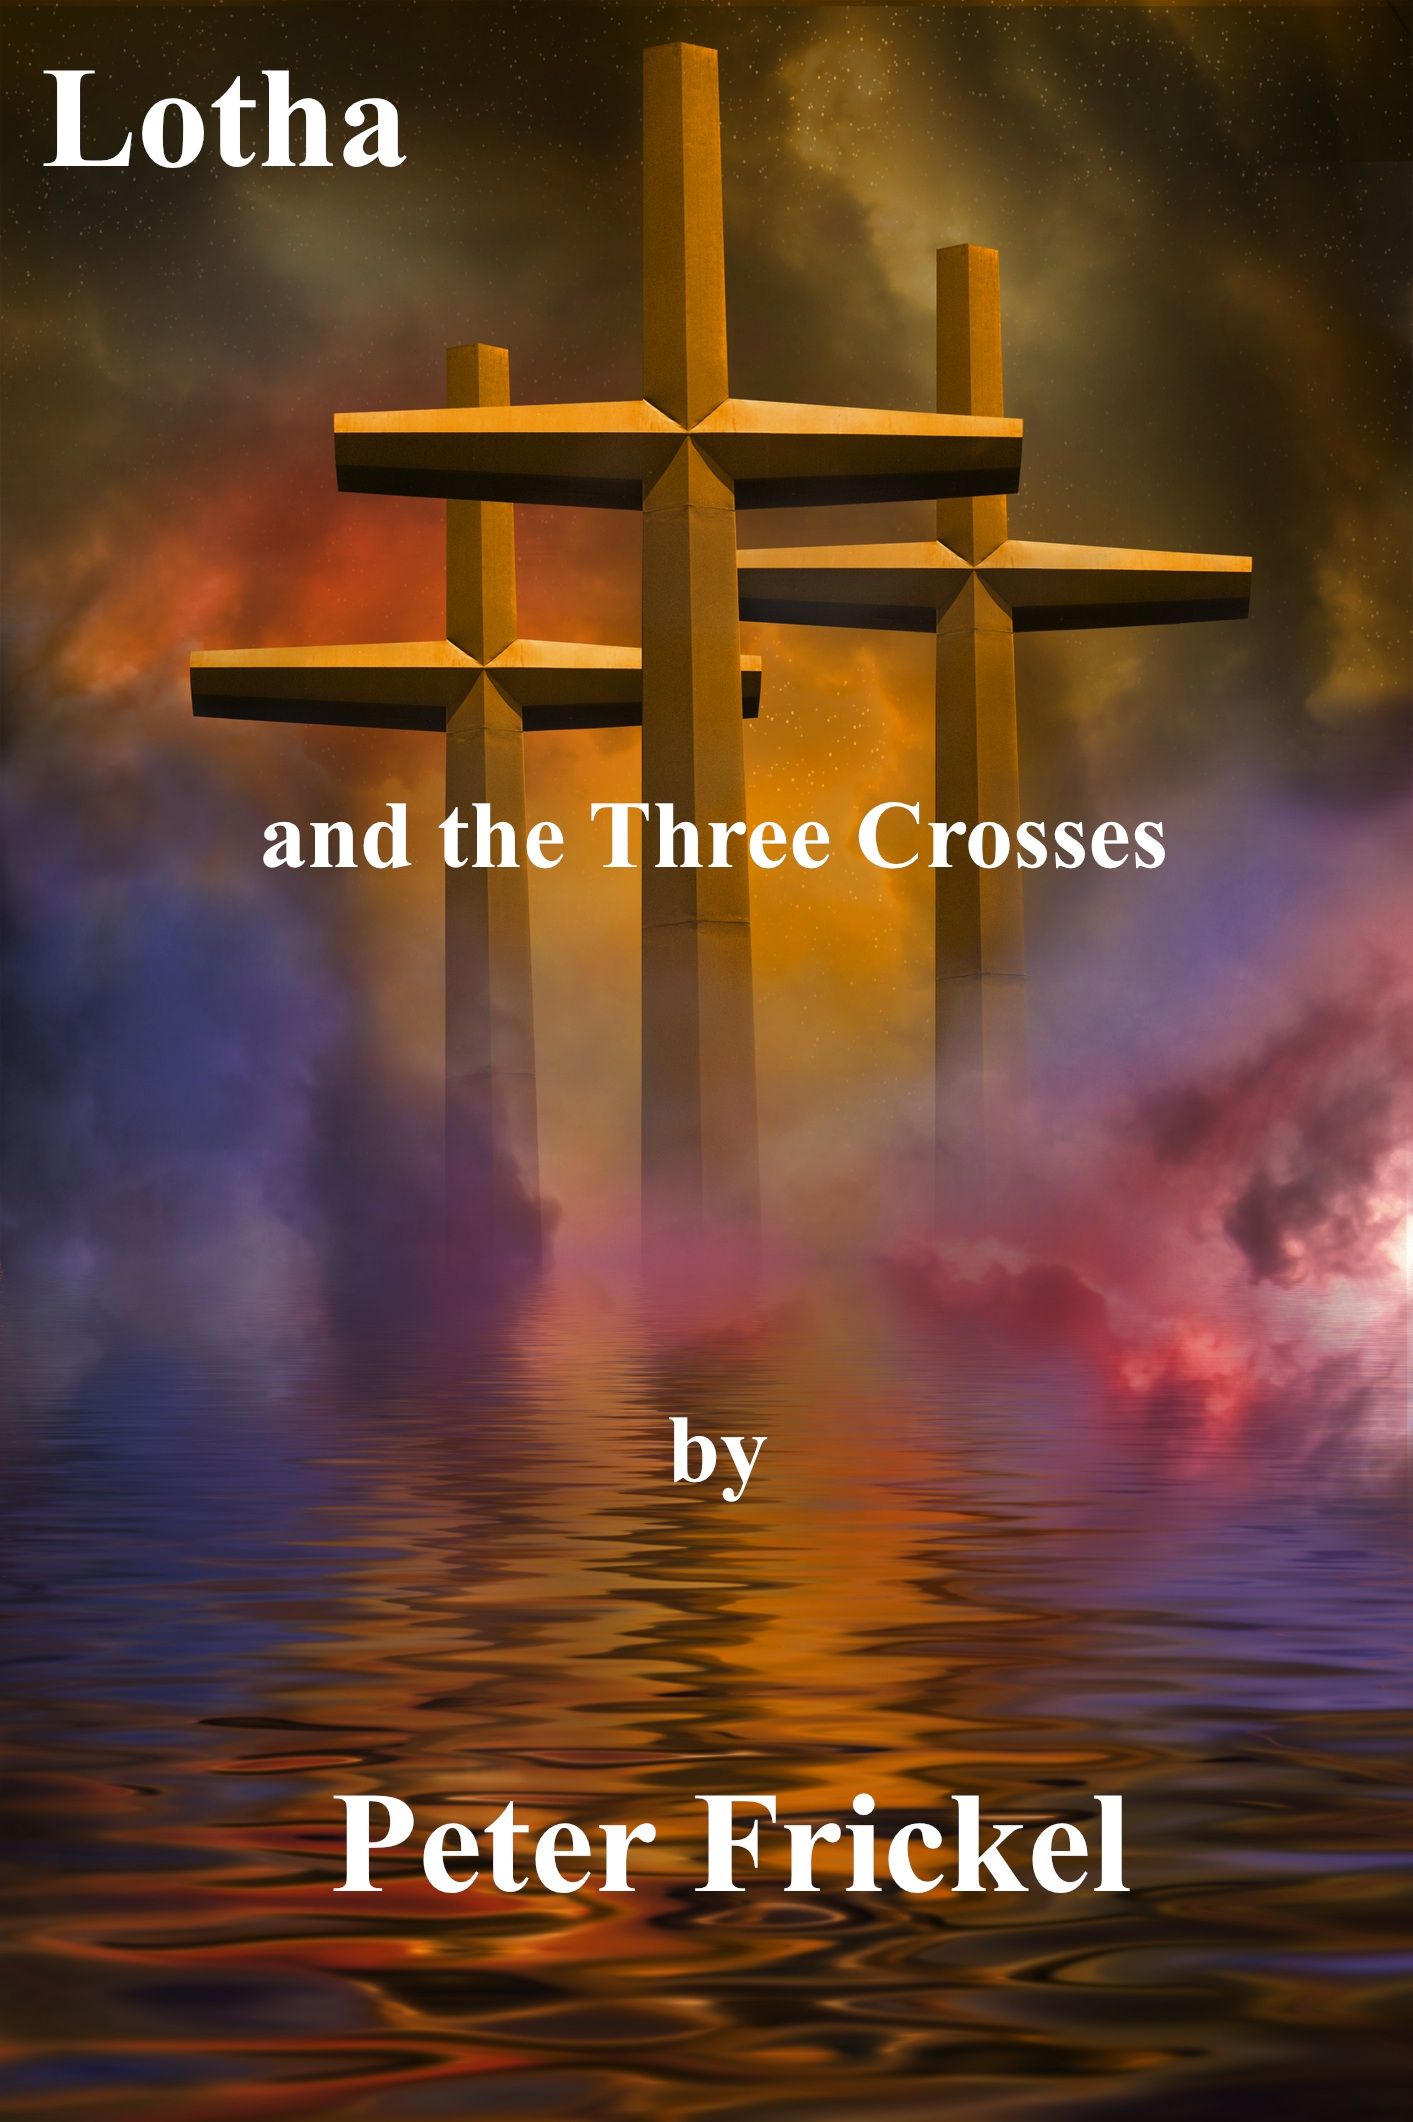 Lotha and the Three Crosses